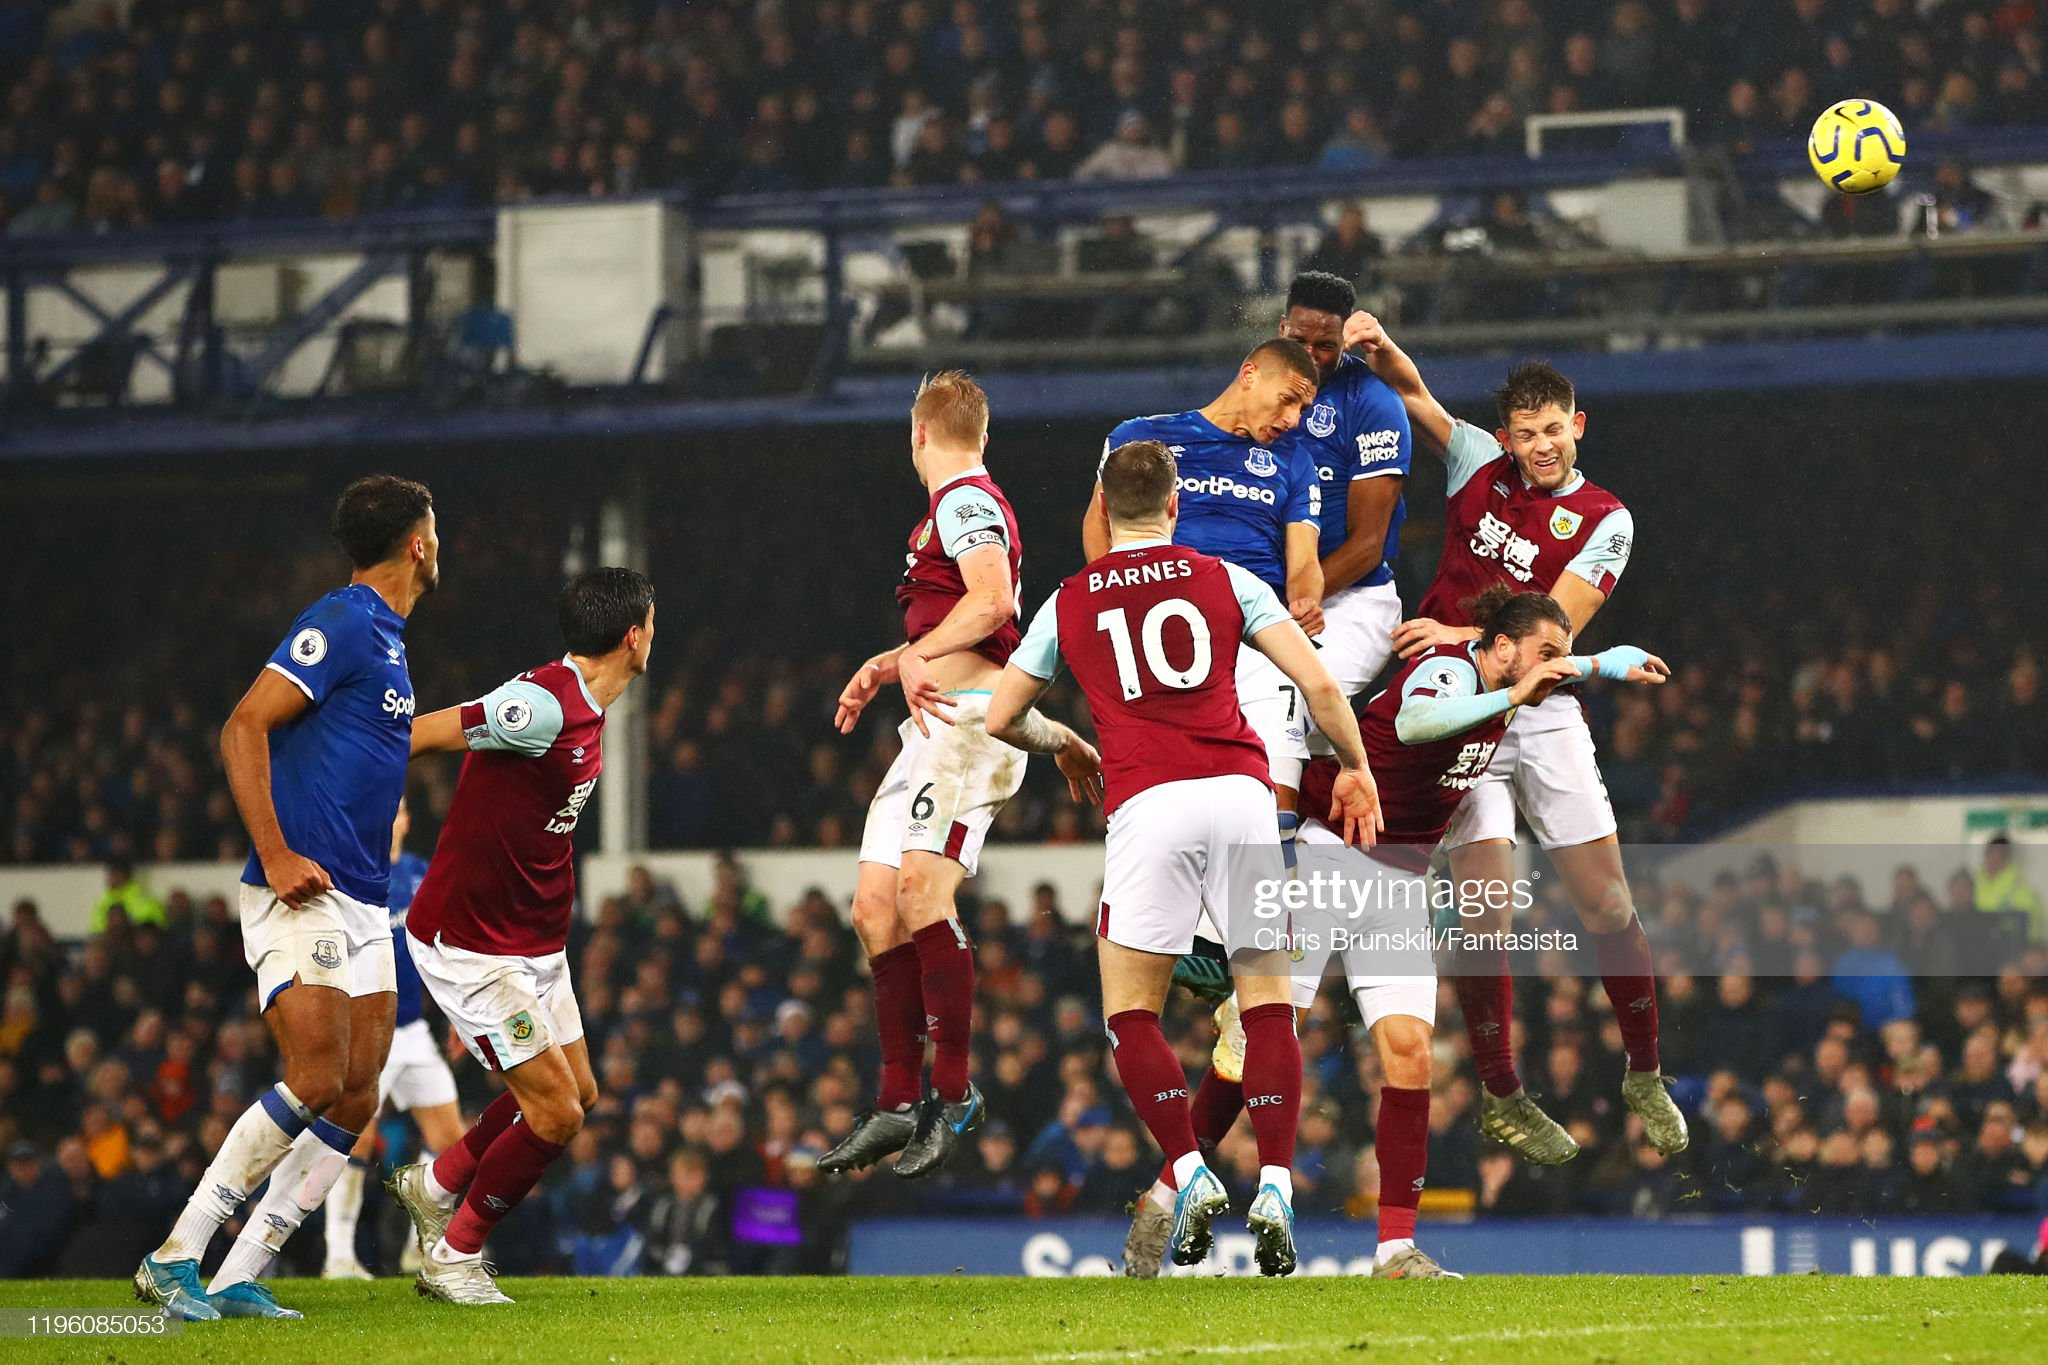 Burnley vs Everton Preview, prediction and odds